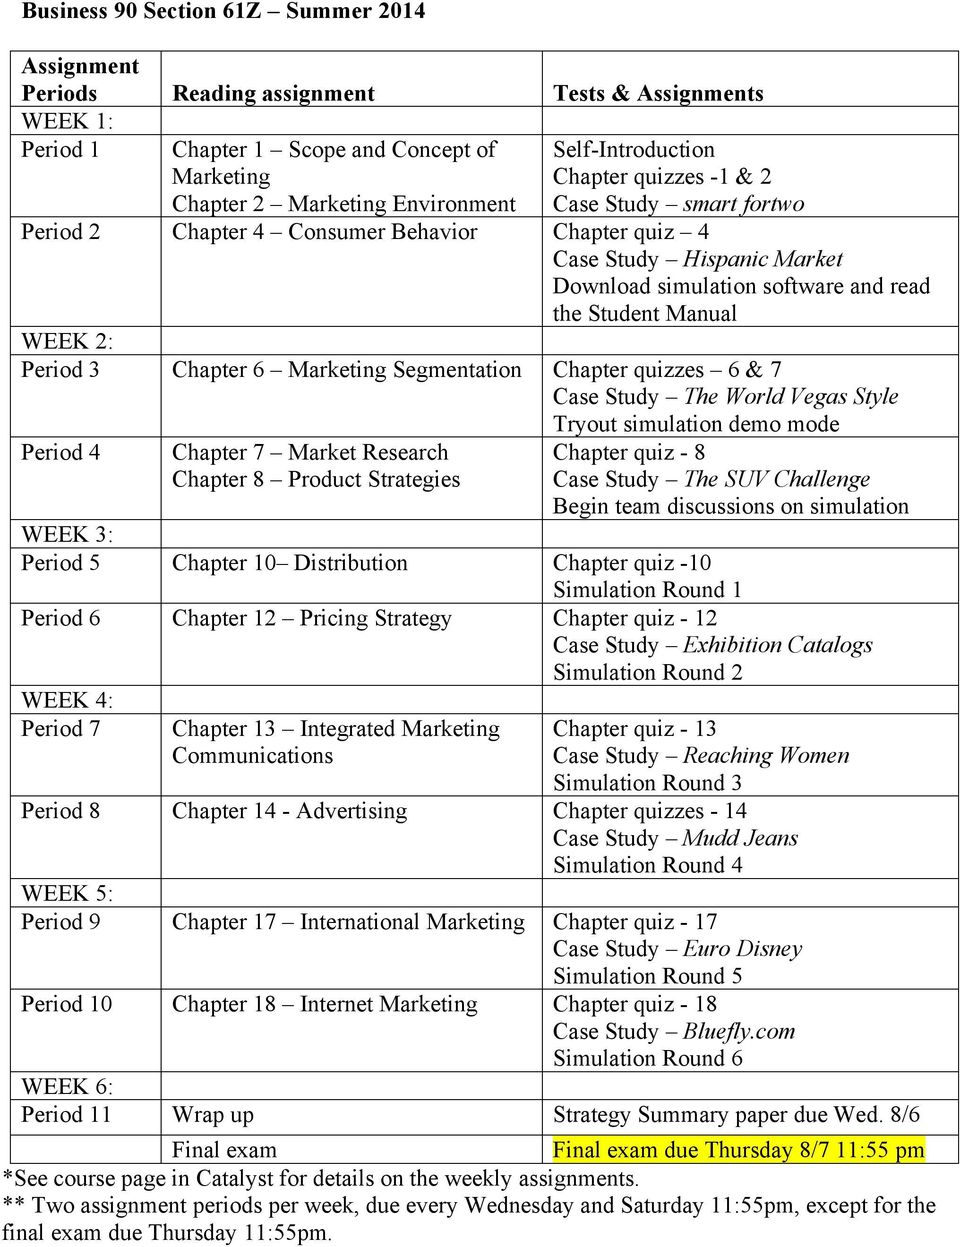 Manual WEEK 2: Period 3 Chapter 6 Marketing Segmentation Chapter quizzes 6 & 7 Case Study The World Vegas Style Tryout simulation demo mode Period 4 Chapter 7 Market Research Chapter 8 Product